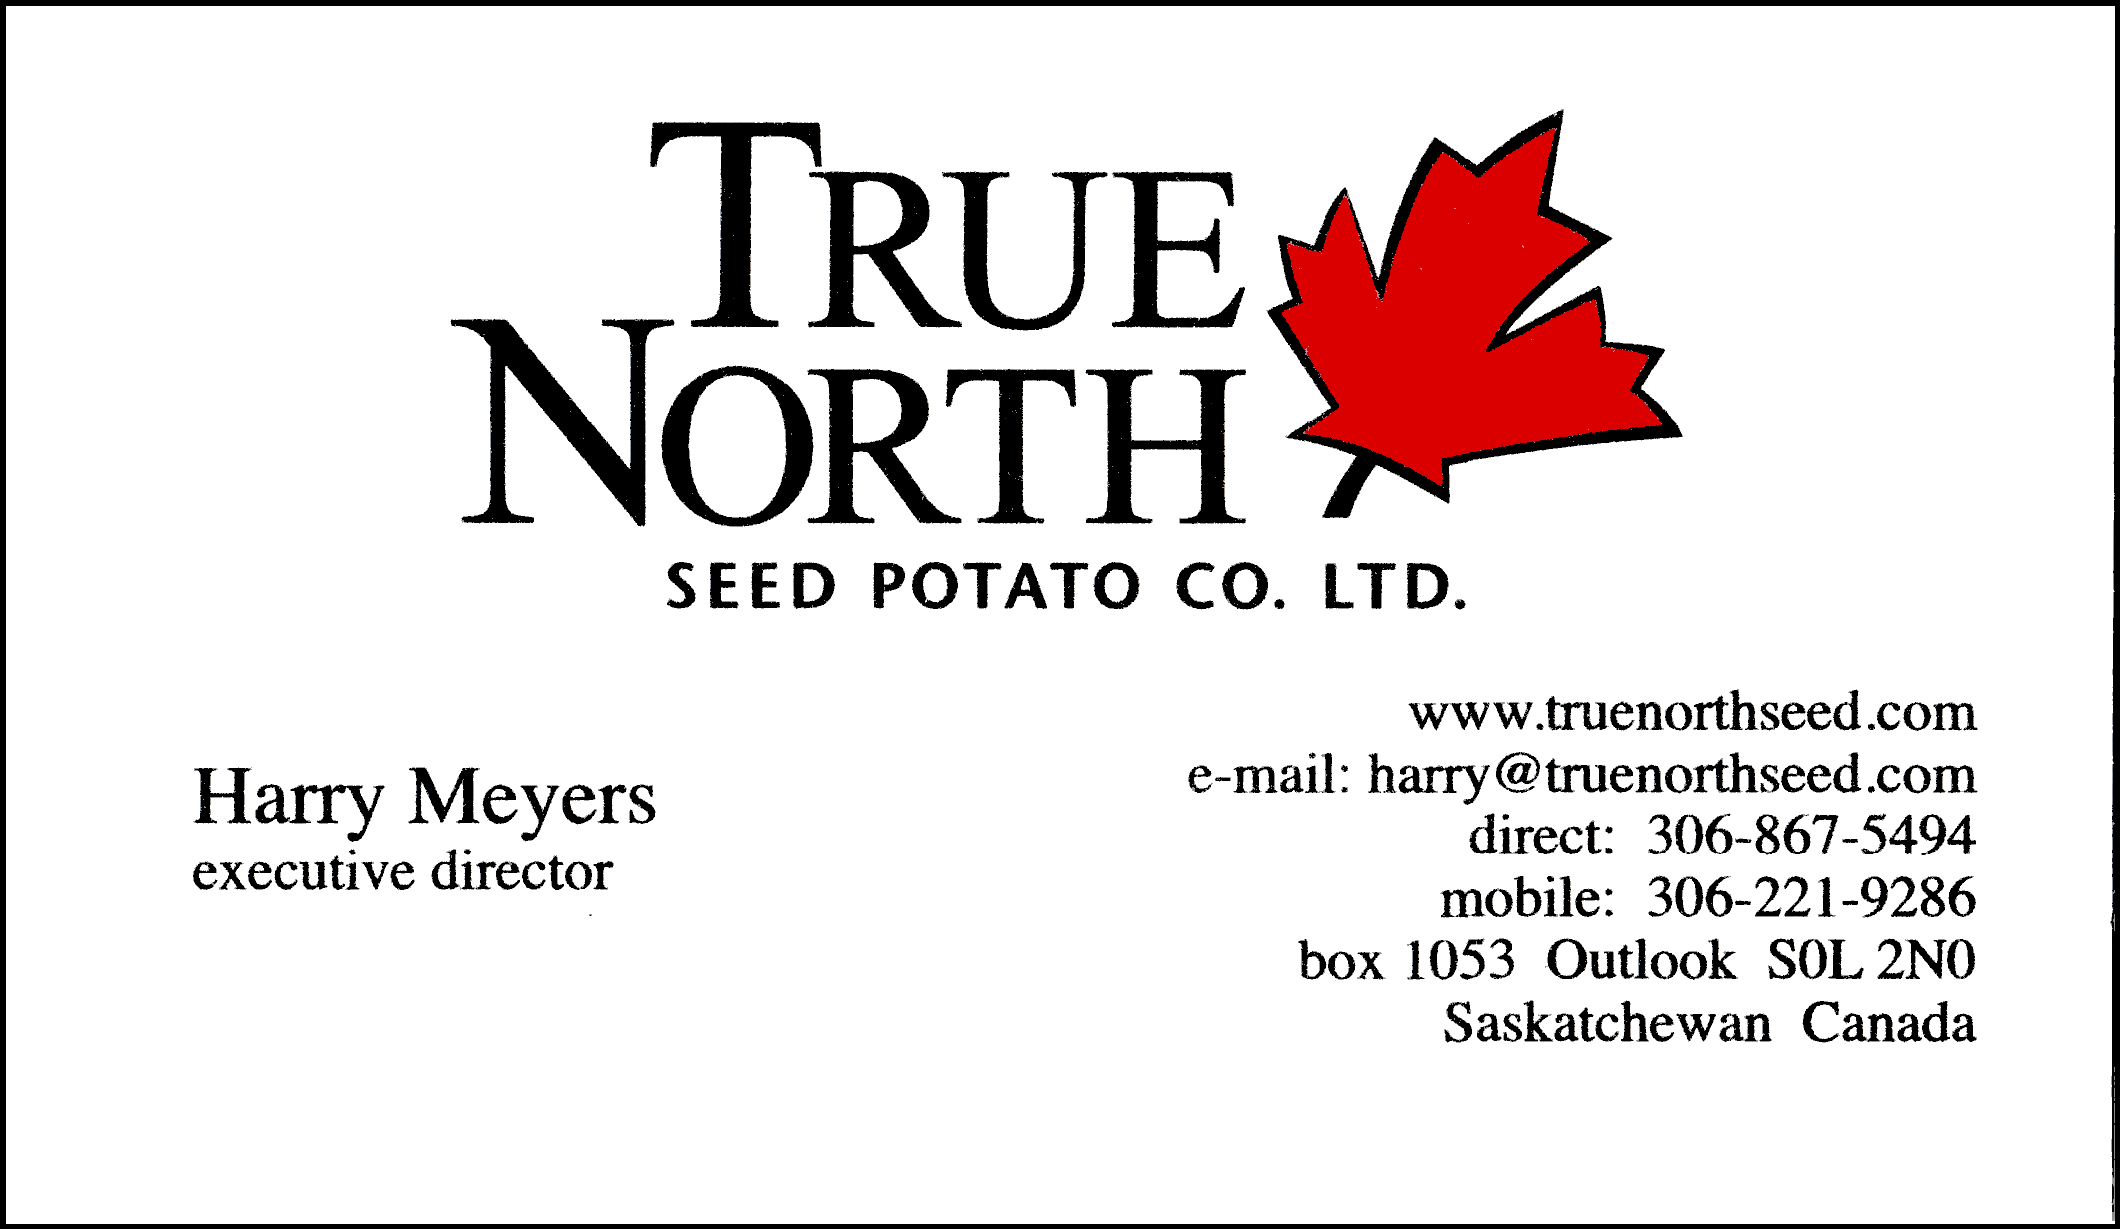 True North Seed Potato Co. Ltd.